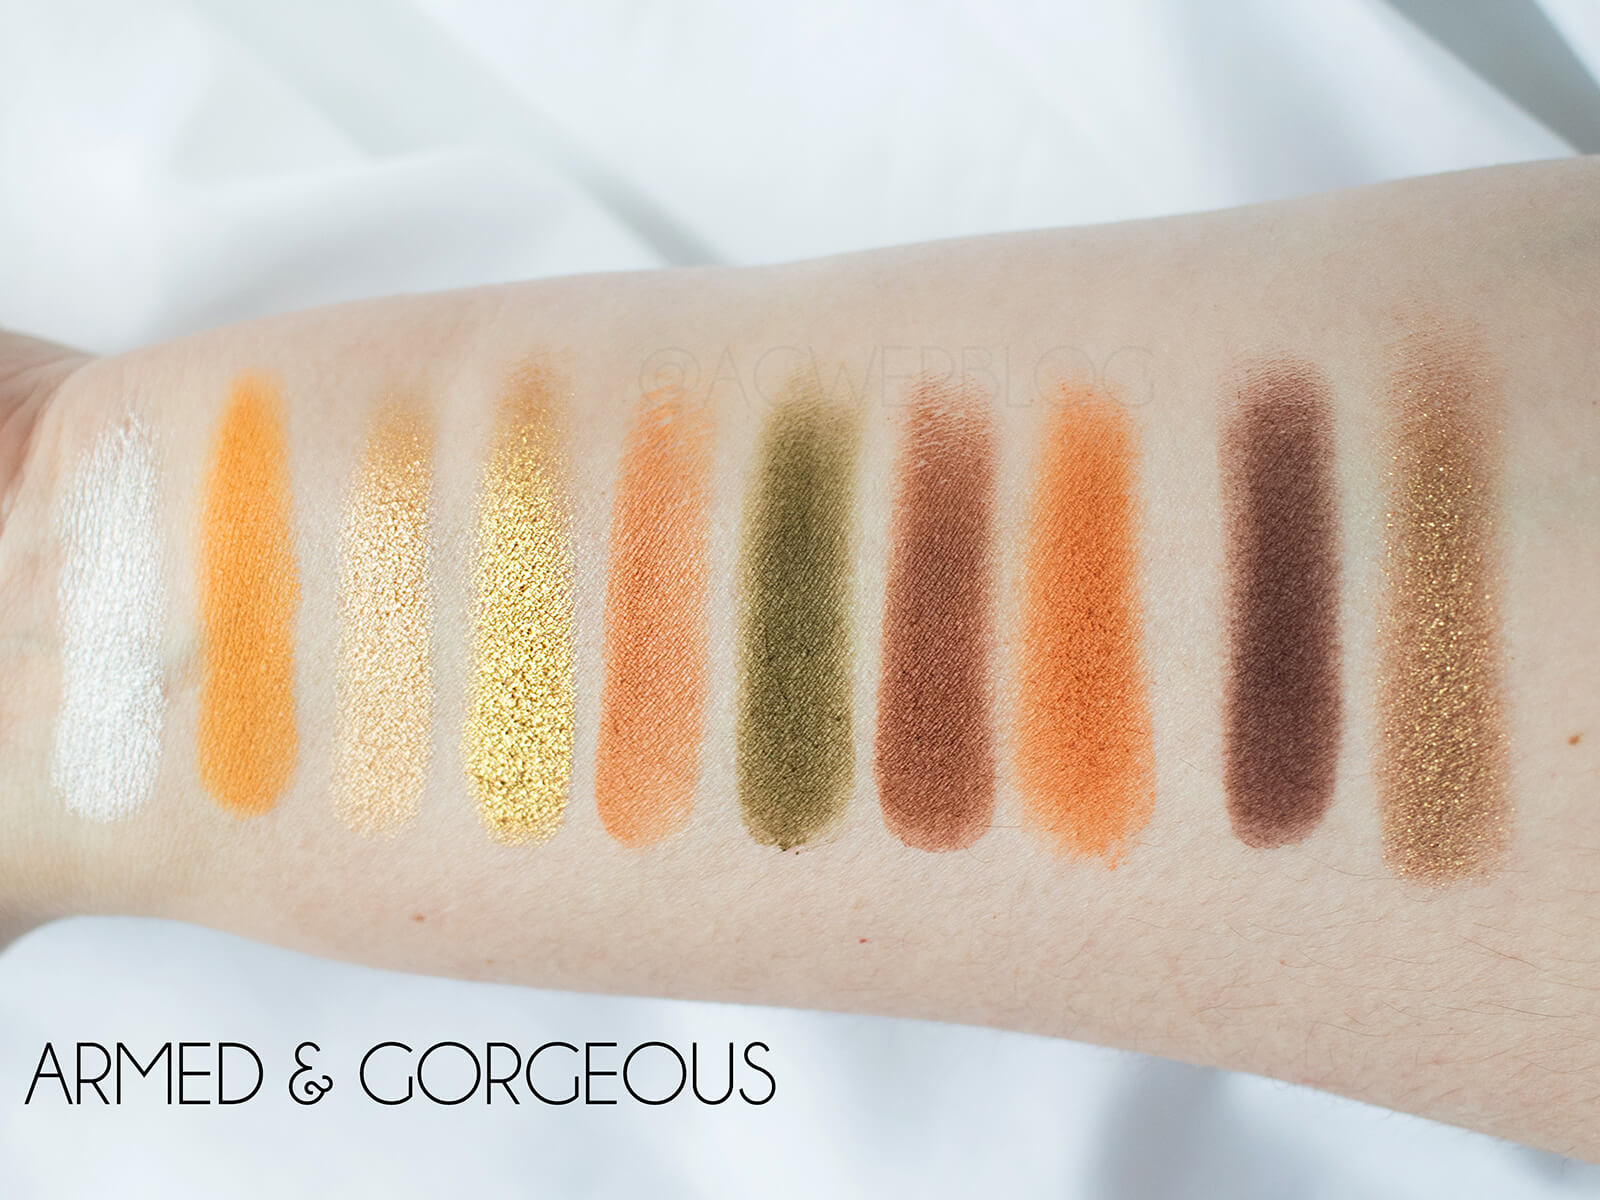 ARMED & GORGEOUS SWATCHES